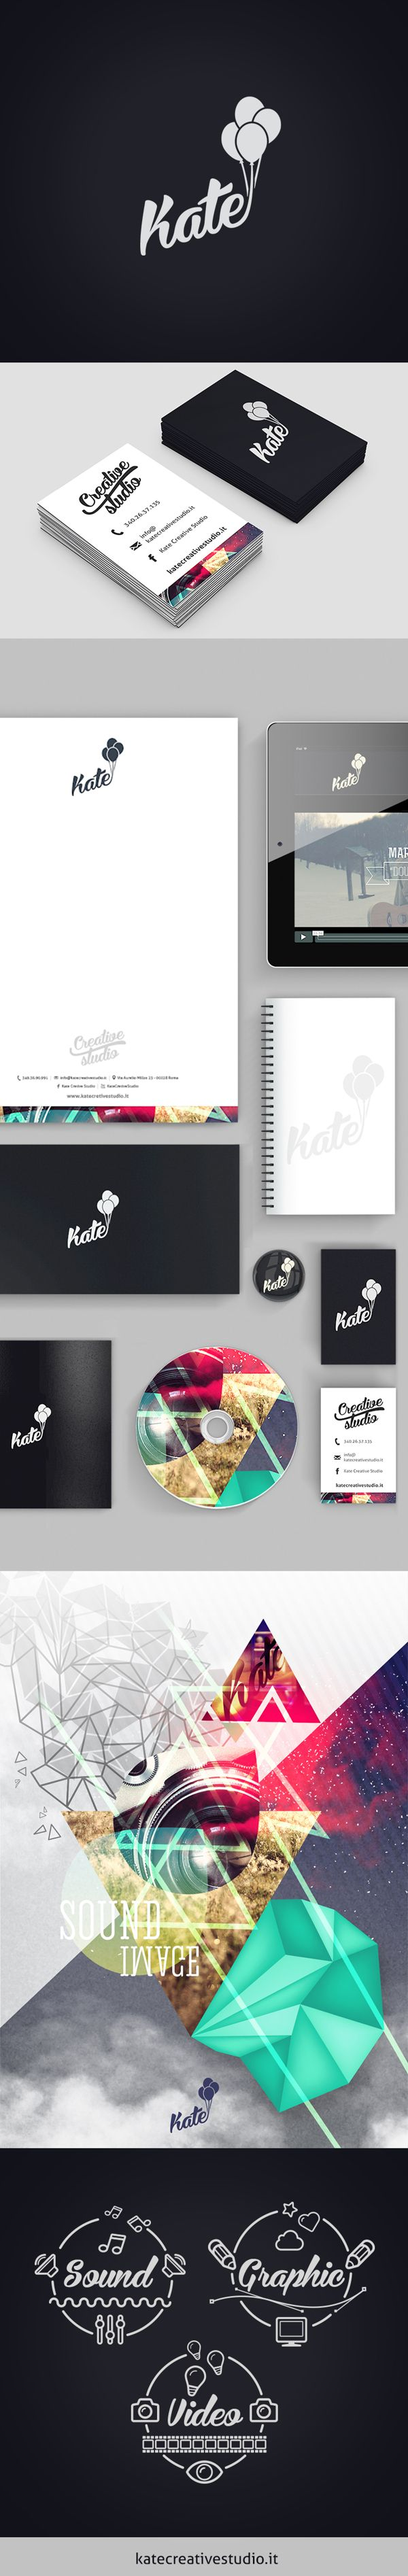 Kate Creative Studio by giorgia negro, via Behance